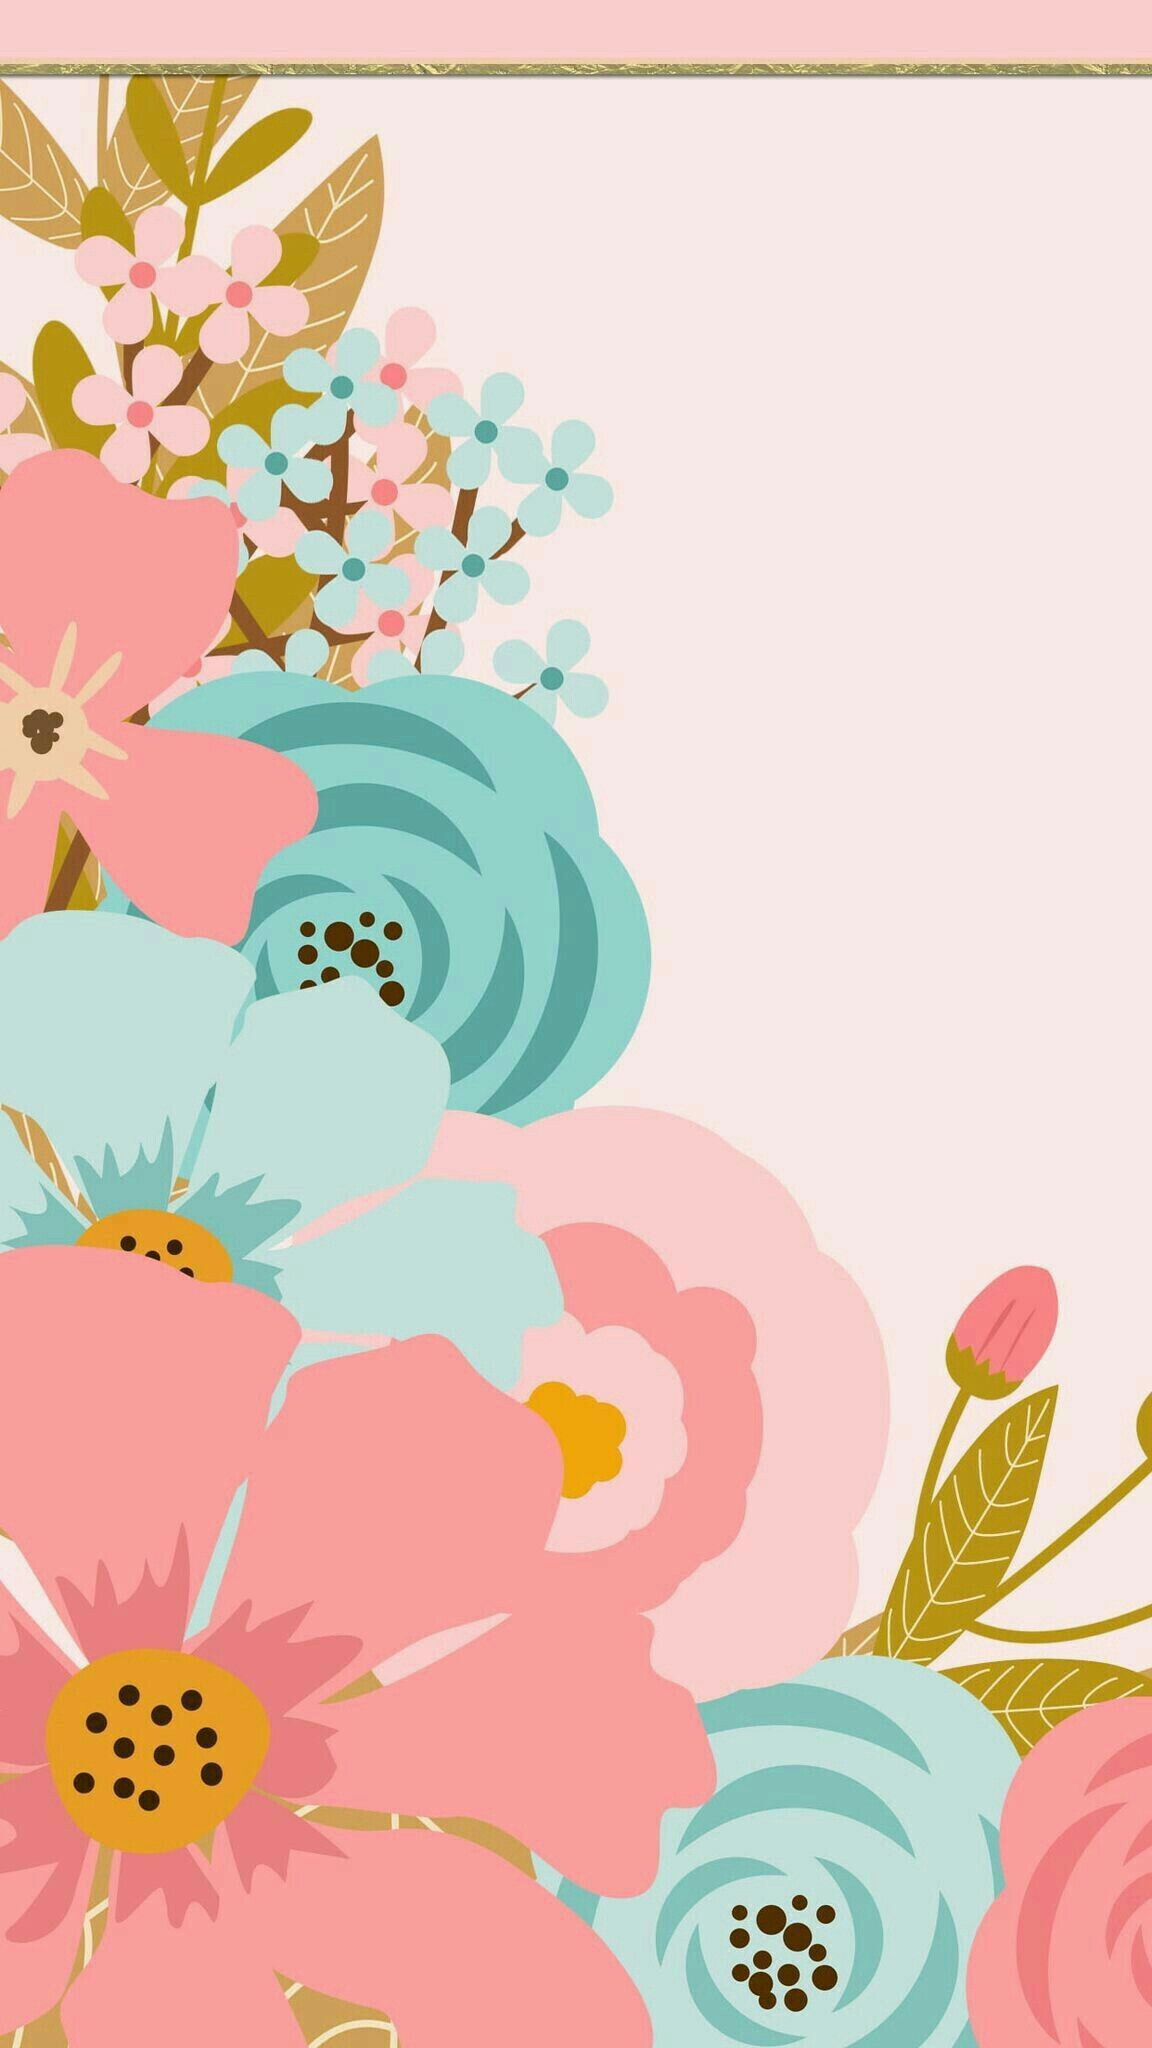 Pin By Emilia On Backgrounds Flower Background Iphone Floral Wallpaper Floral Wallpaper Iphone